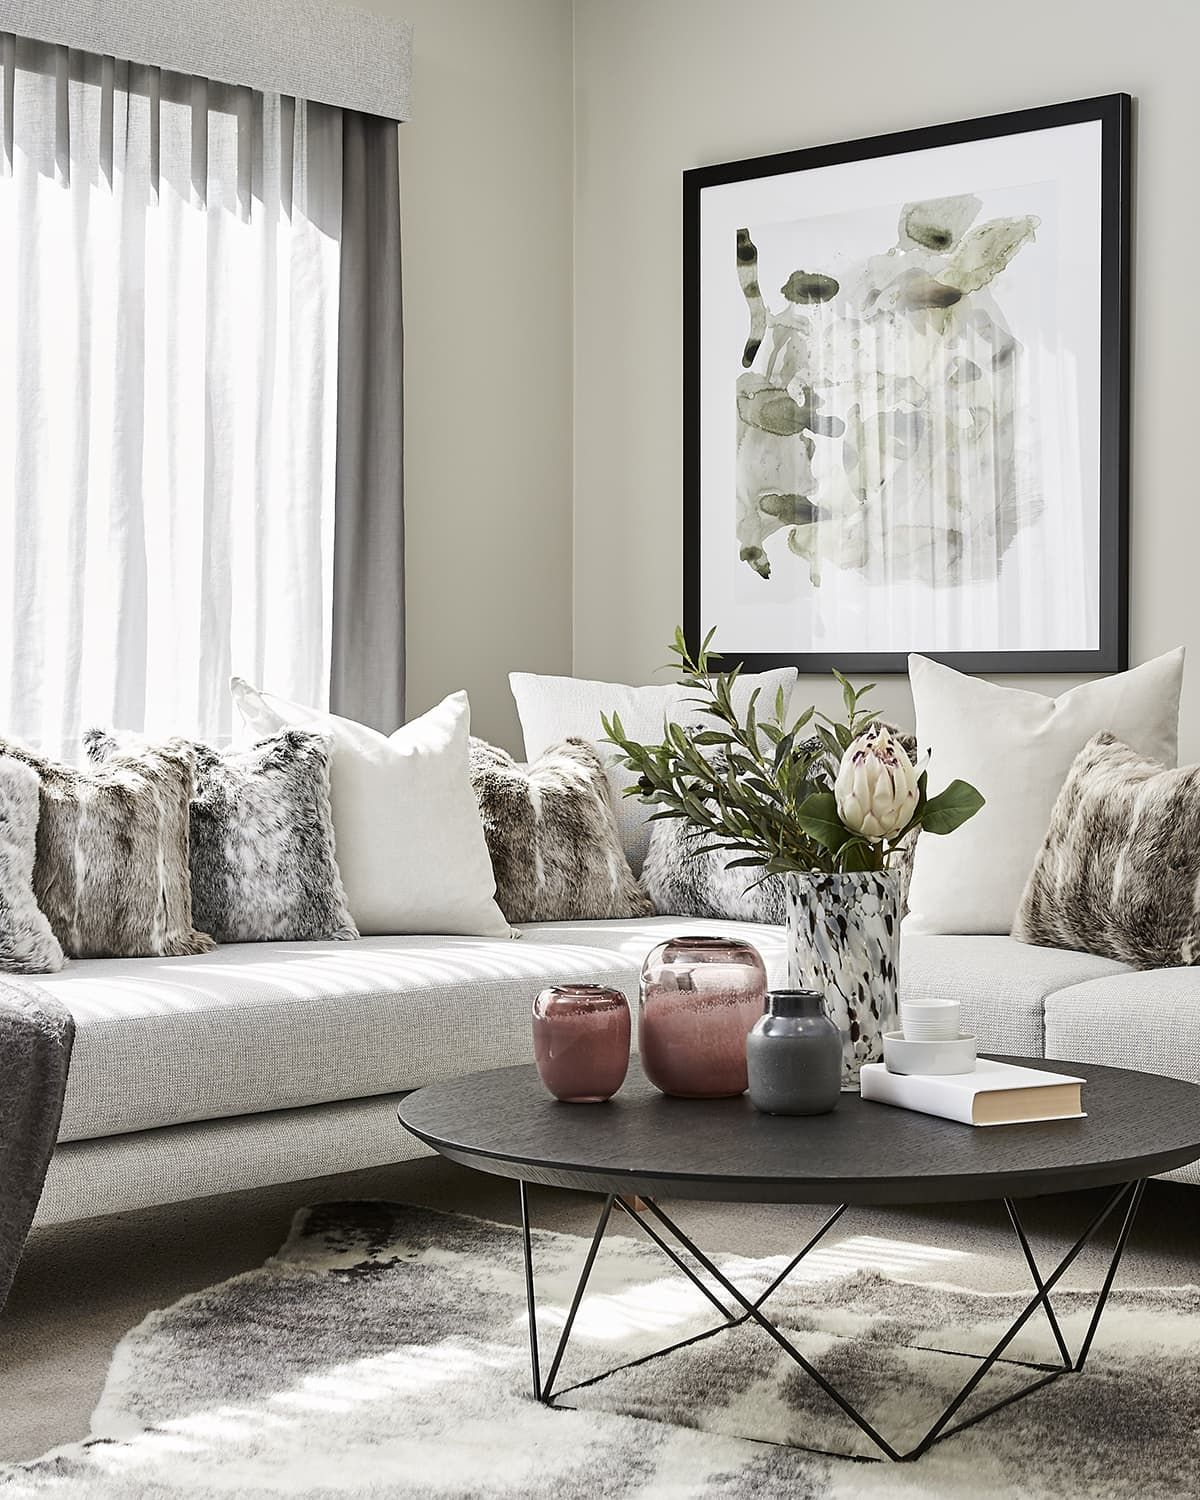 Winter Decorating Ideas For Every Room At Home Tlc Interiors Rugs In Living Room Winter Living Room Living Room Decor Cozy #round #coffee #table #living #room